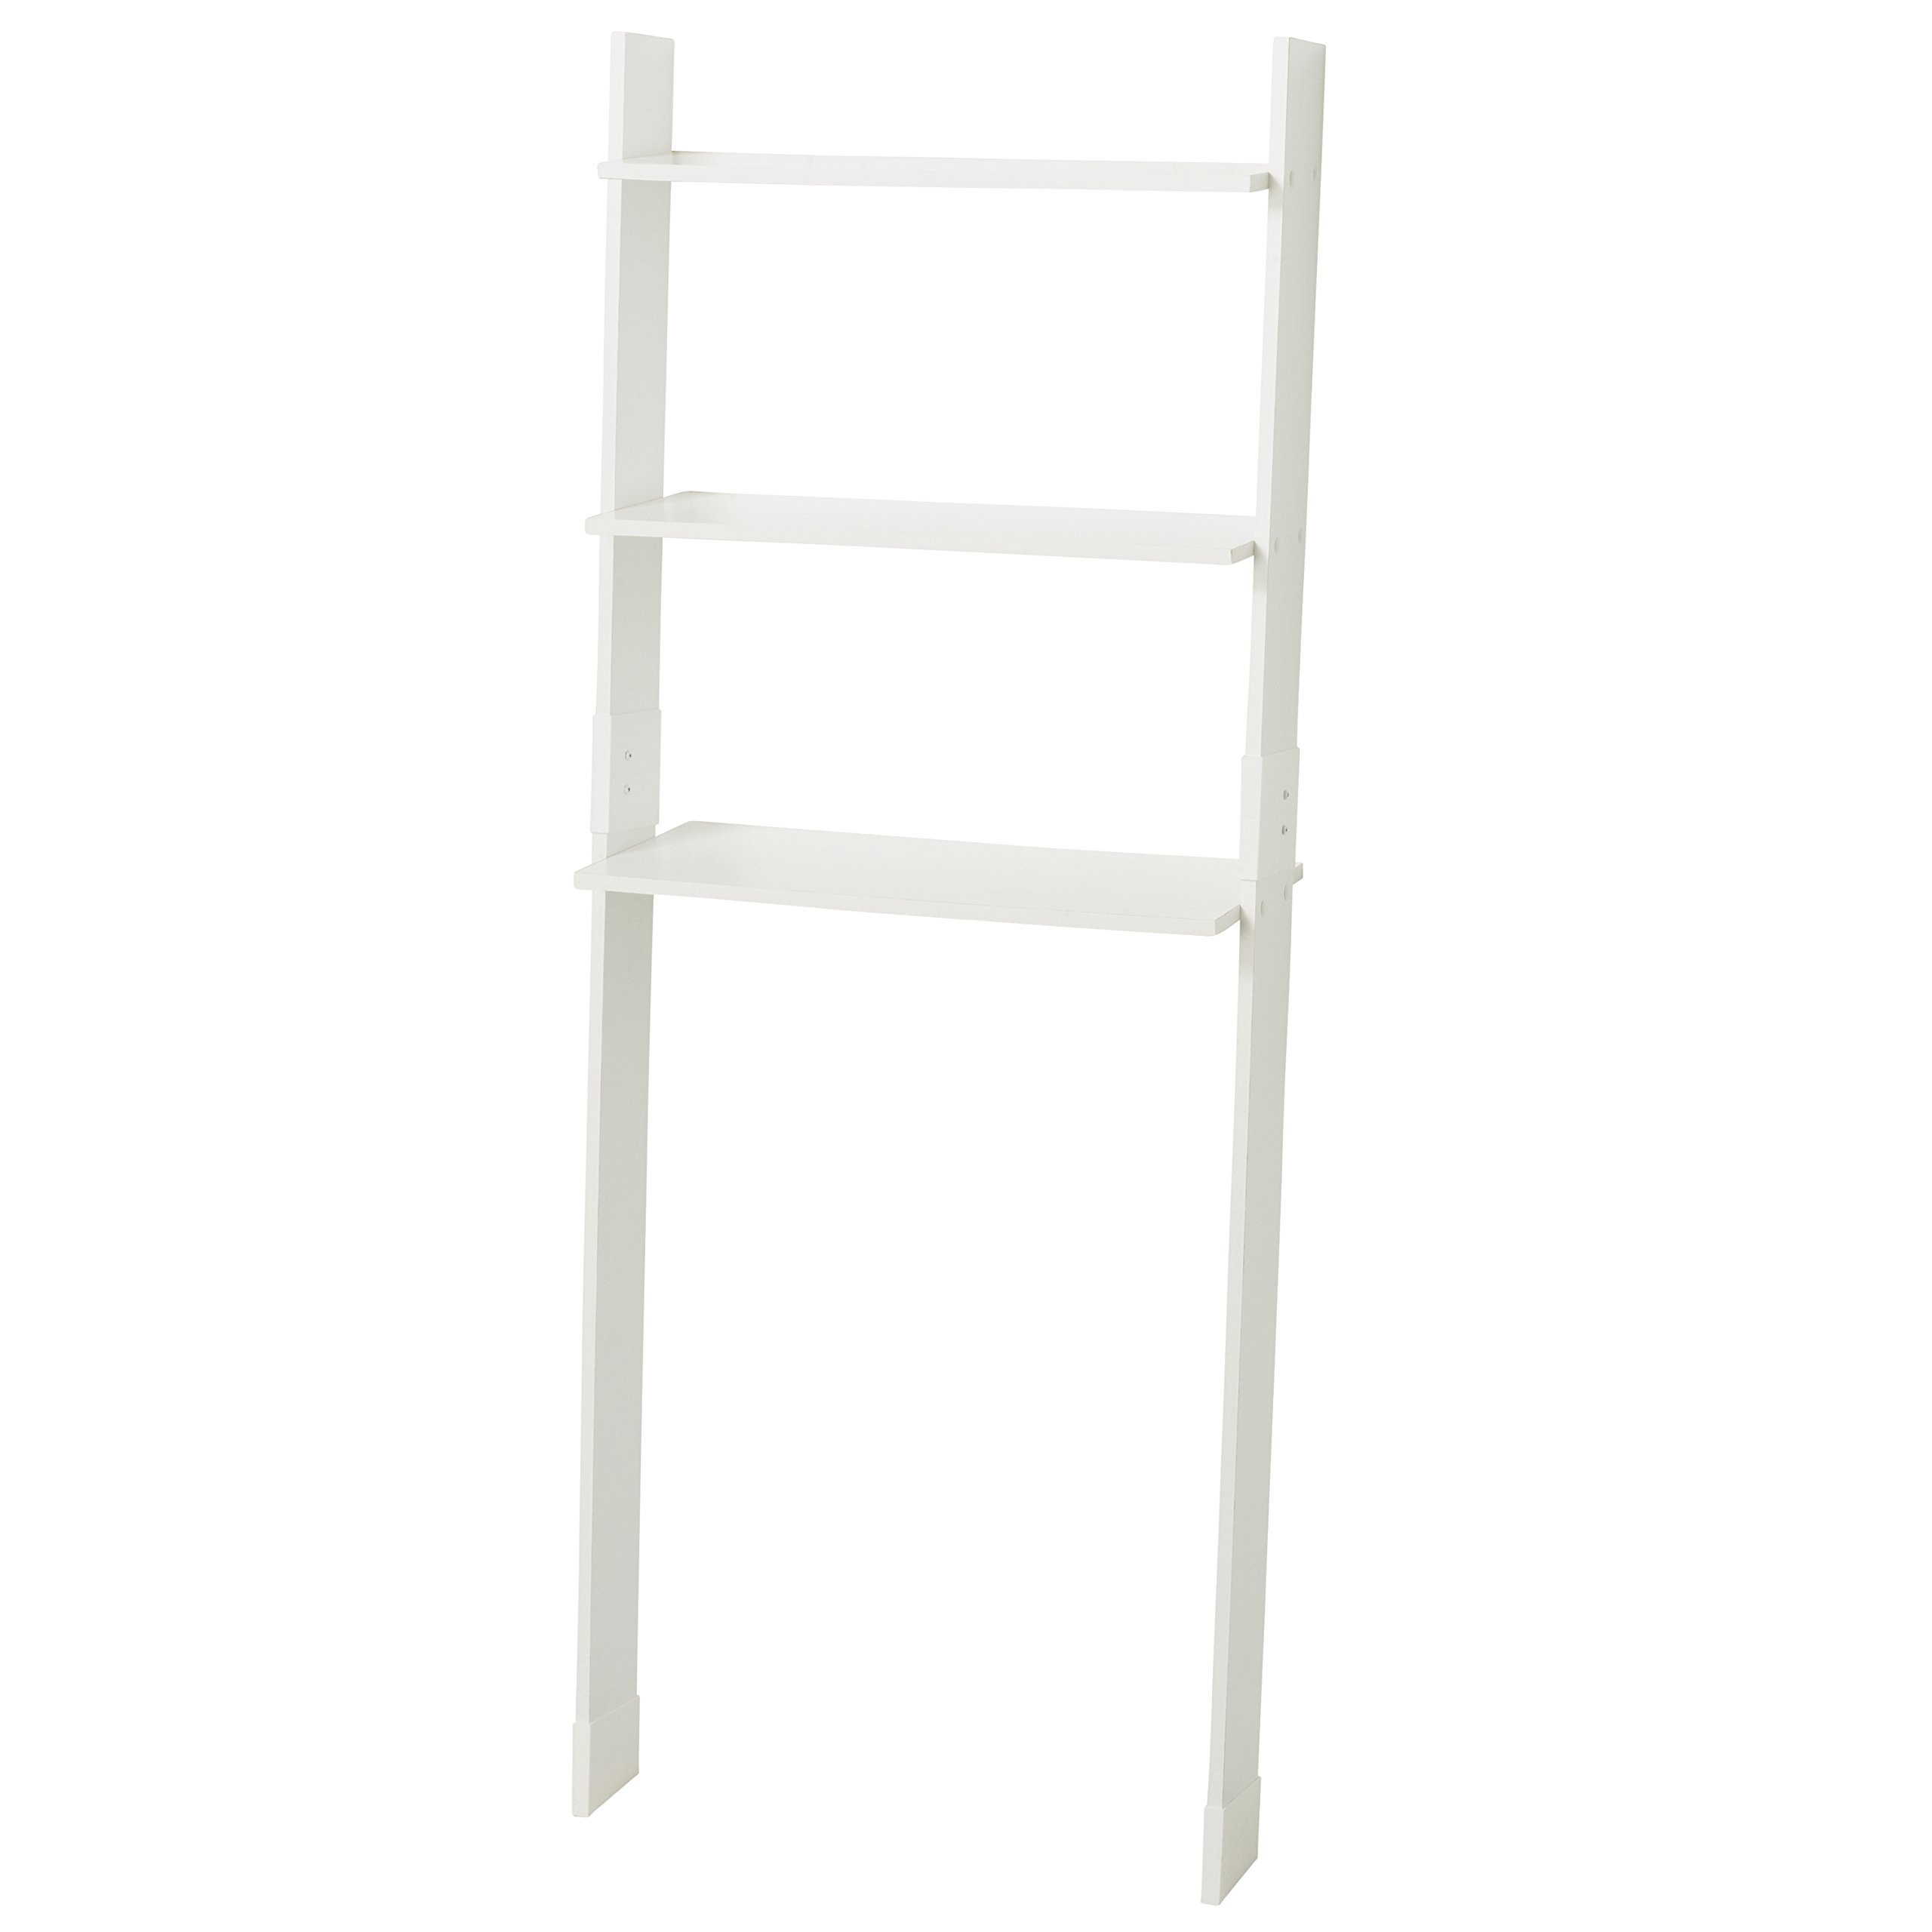 Zenna Home 9431W, Leaning Wood Ladder-Style Bathroom Spacesaver, White by Zenna Home